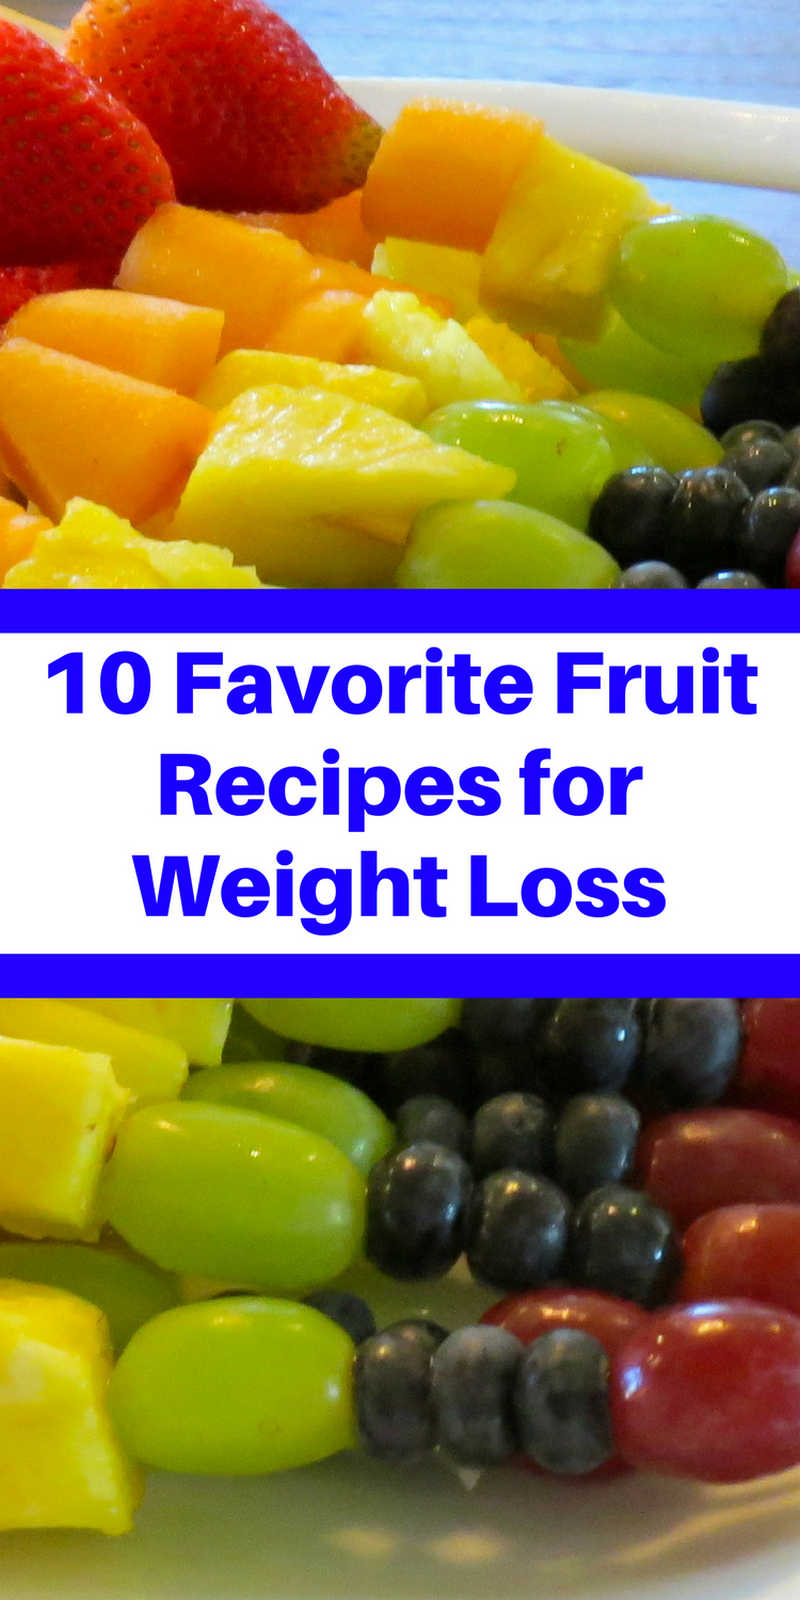 10 Favorite Fruit Recipes for Weight Loss   What To Do With A Bowl of Fruits   Recipes   Weight Loss Food   Weight Loss Recipes   Healthy Meals   Weight Loss Snack Recipes   Weight Loss Dinner Recipes   Weight Loss Dessert Recipes   Weight Loss Low Carb Recipes   Weight Loss Lunch Recipes   Weight Loss Breakfast Recipes   ARoadtoTravel.com